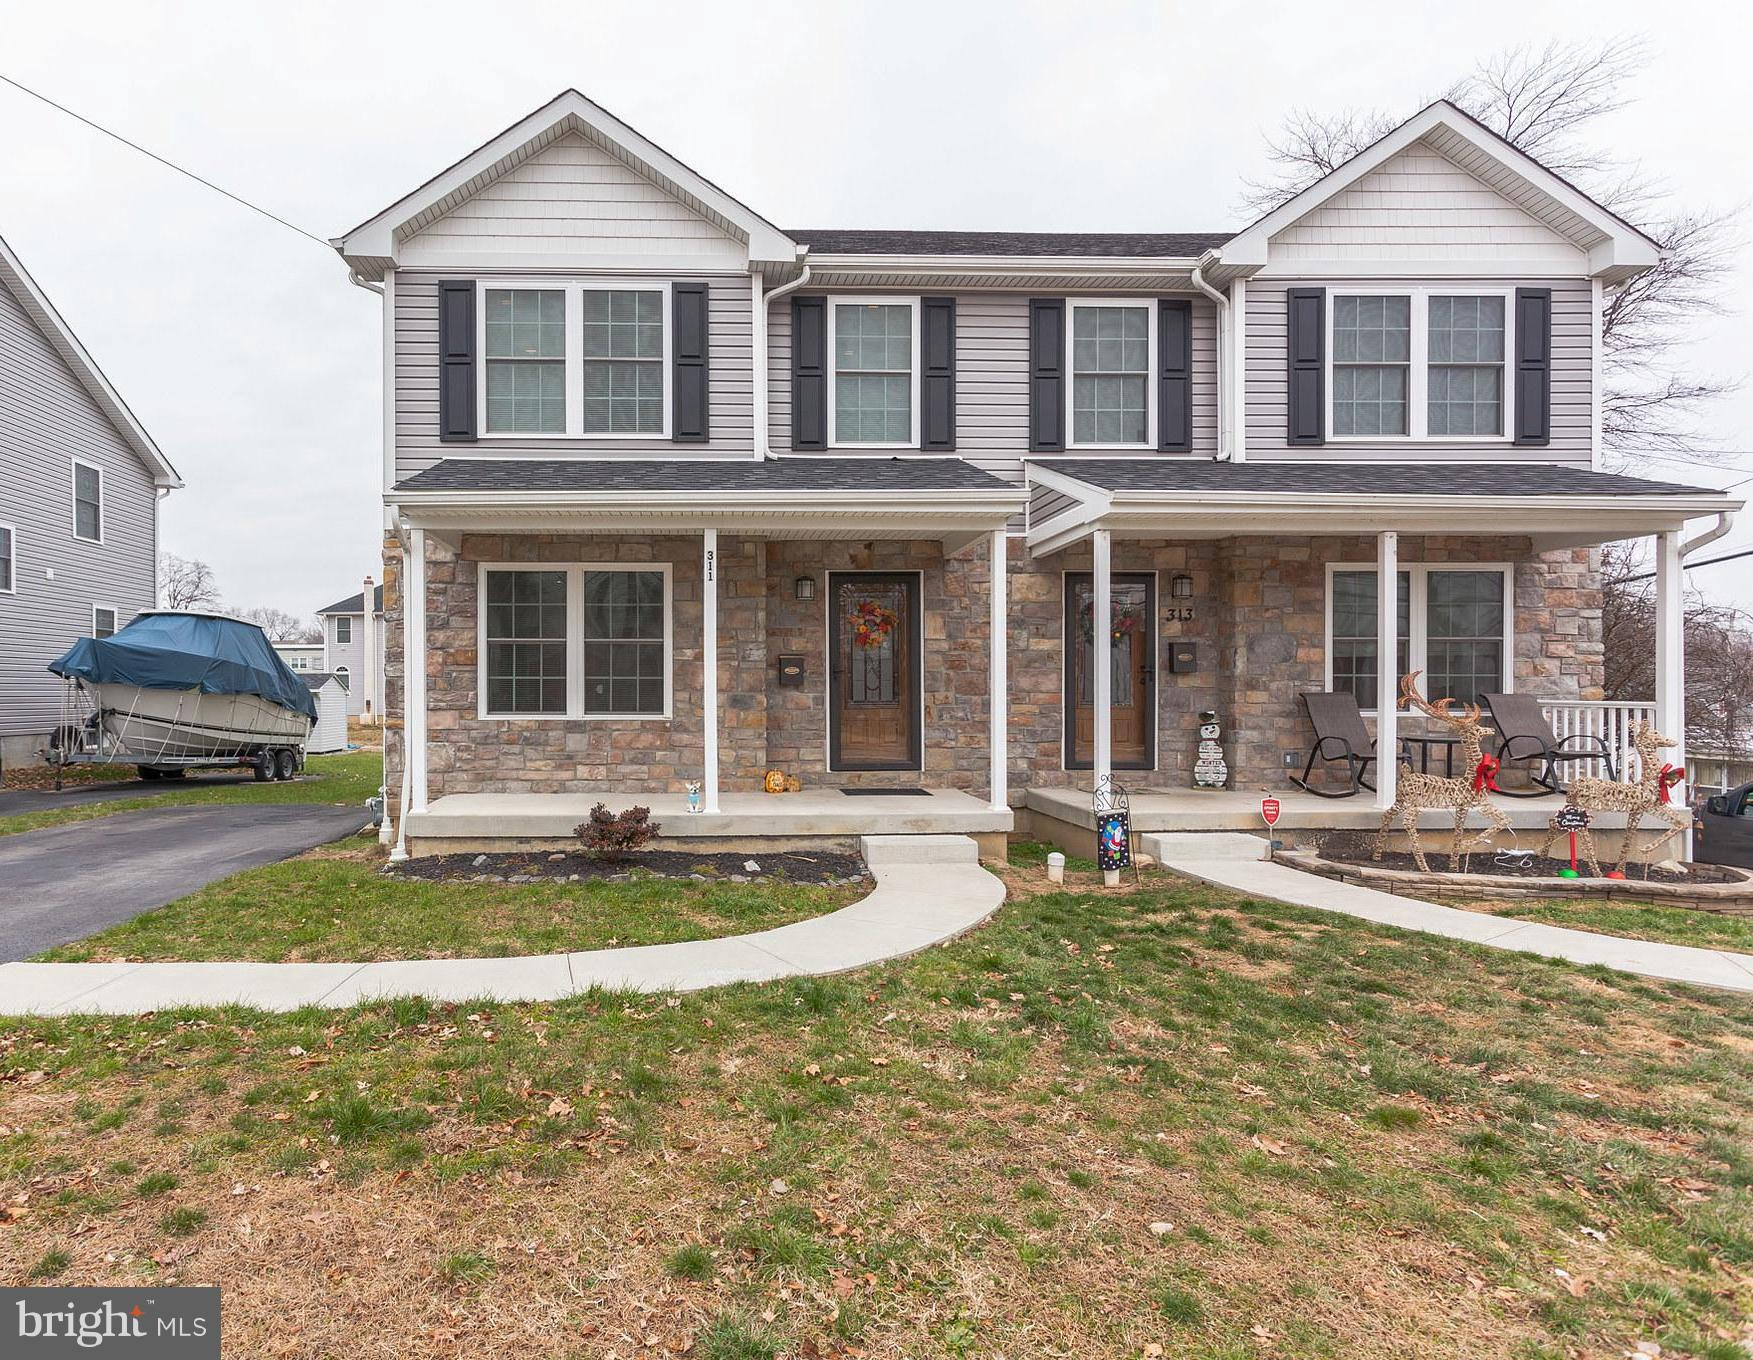 311 W SELLERS AVENUE, RIDLEY PARK, PA 19078